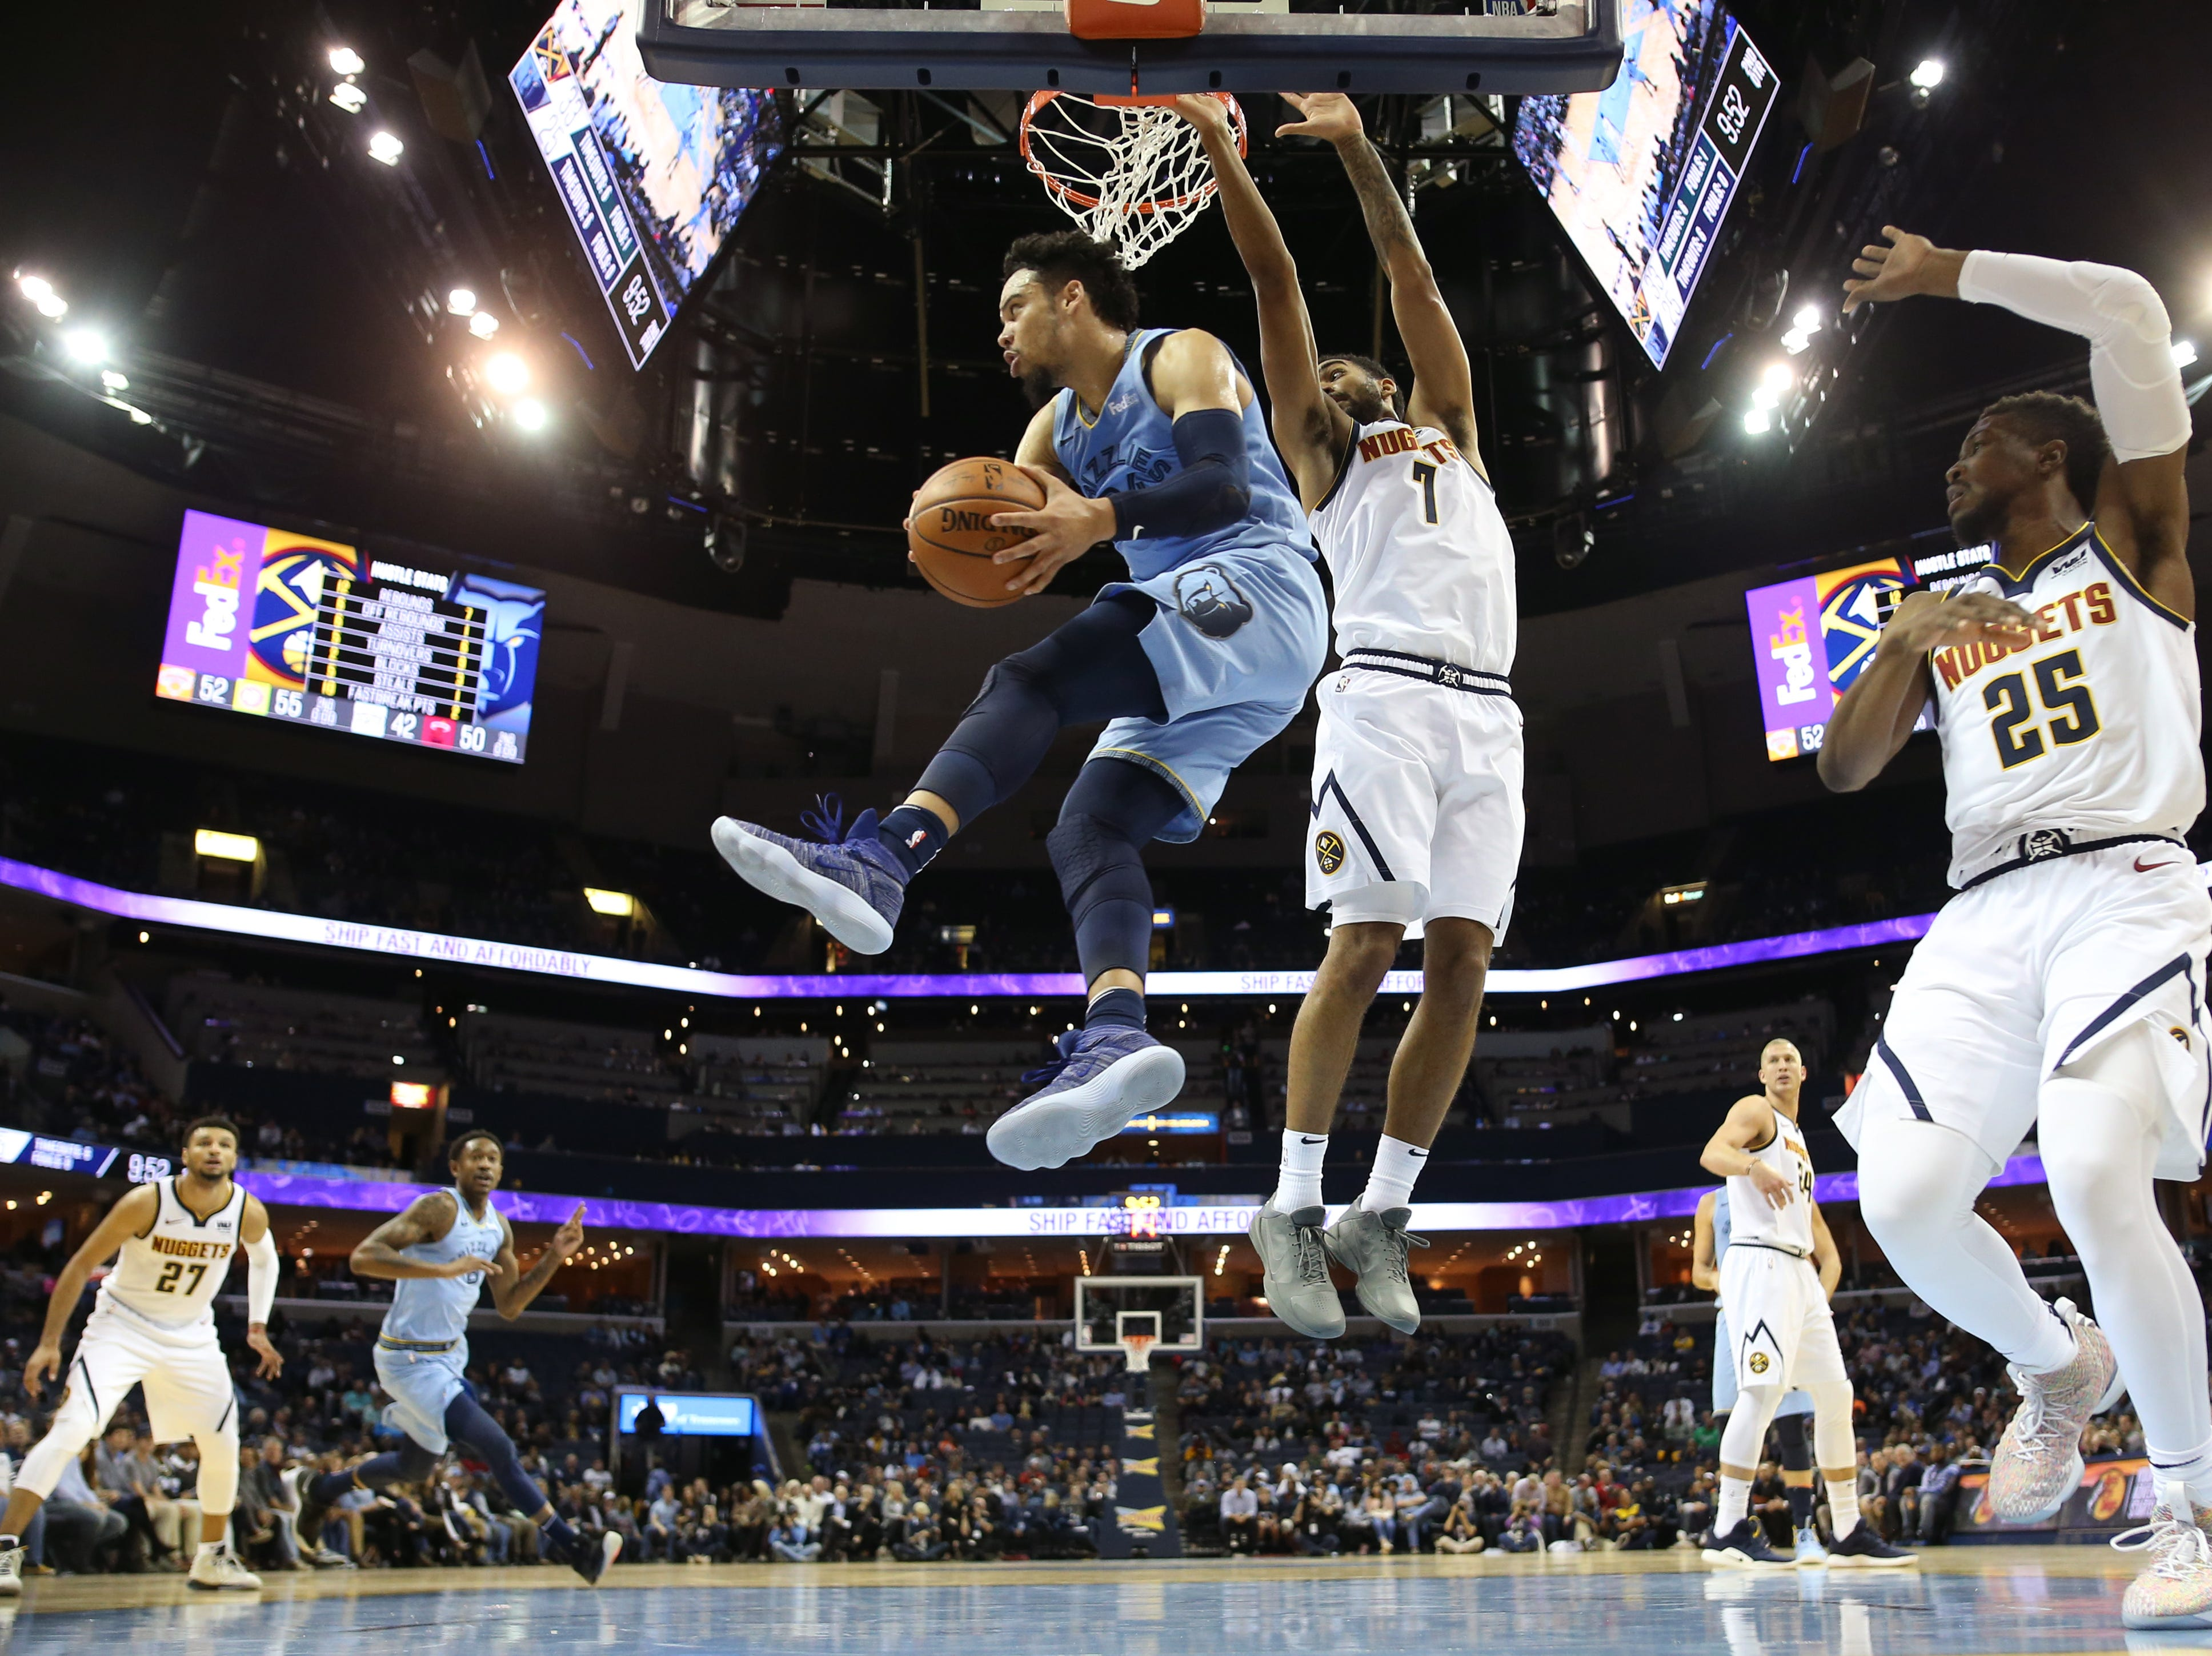 Memphis Grizzlies guard Dillon Brooks looks to pass the ball from the air past Denver Nuggets forward Trey Lyles during their game at the FedExForum on Wednesday, November 7, 2018.